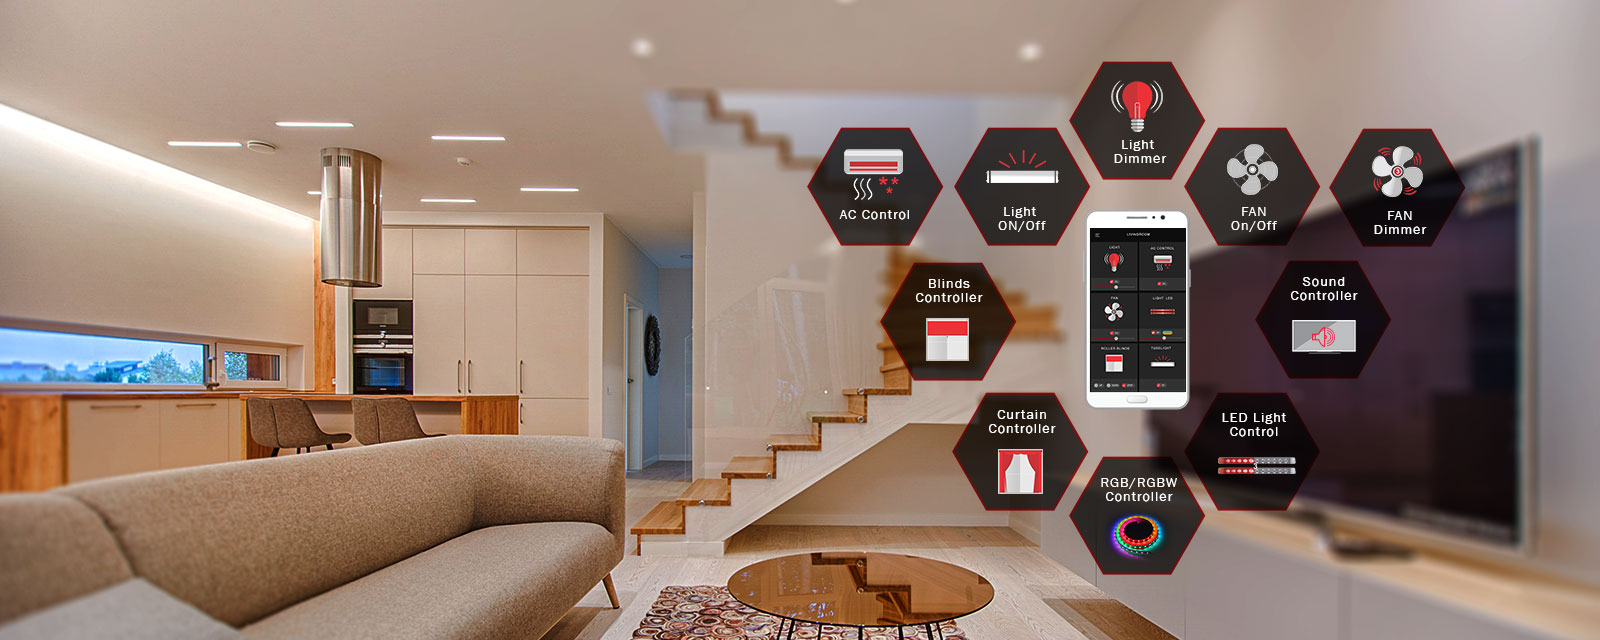 Wifi Light Switches by Fox Domotics